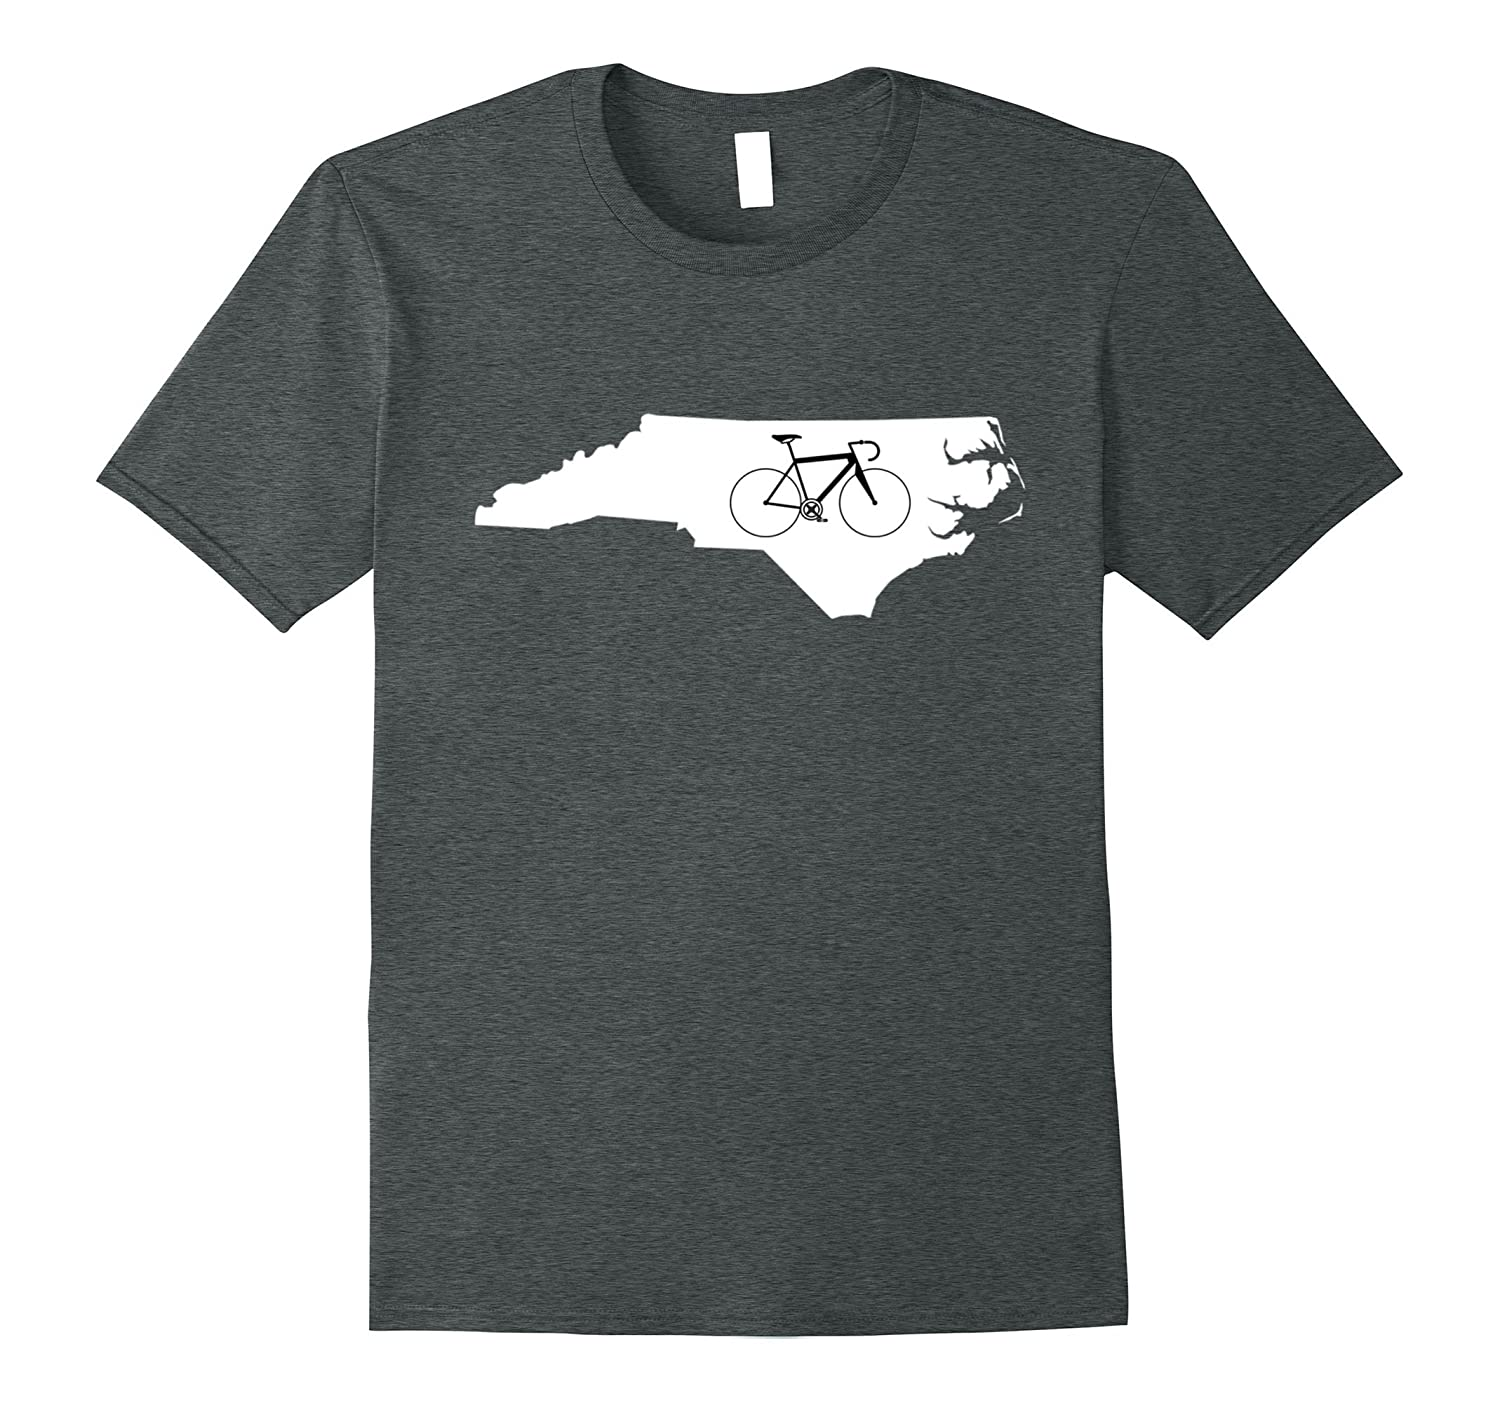 Bicycle North Carolina Shirt, Cyclist Tee, State Road Bike-T-Shirt